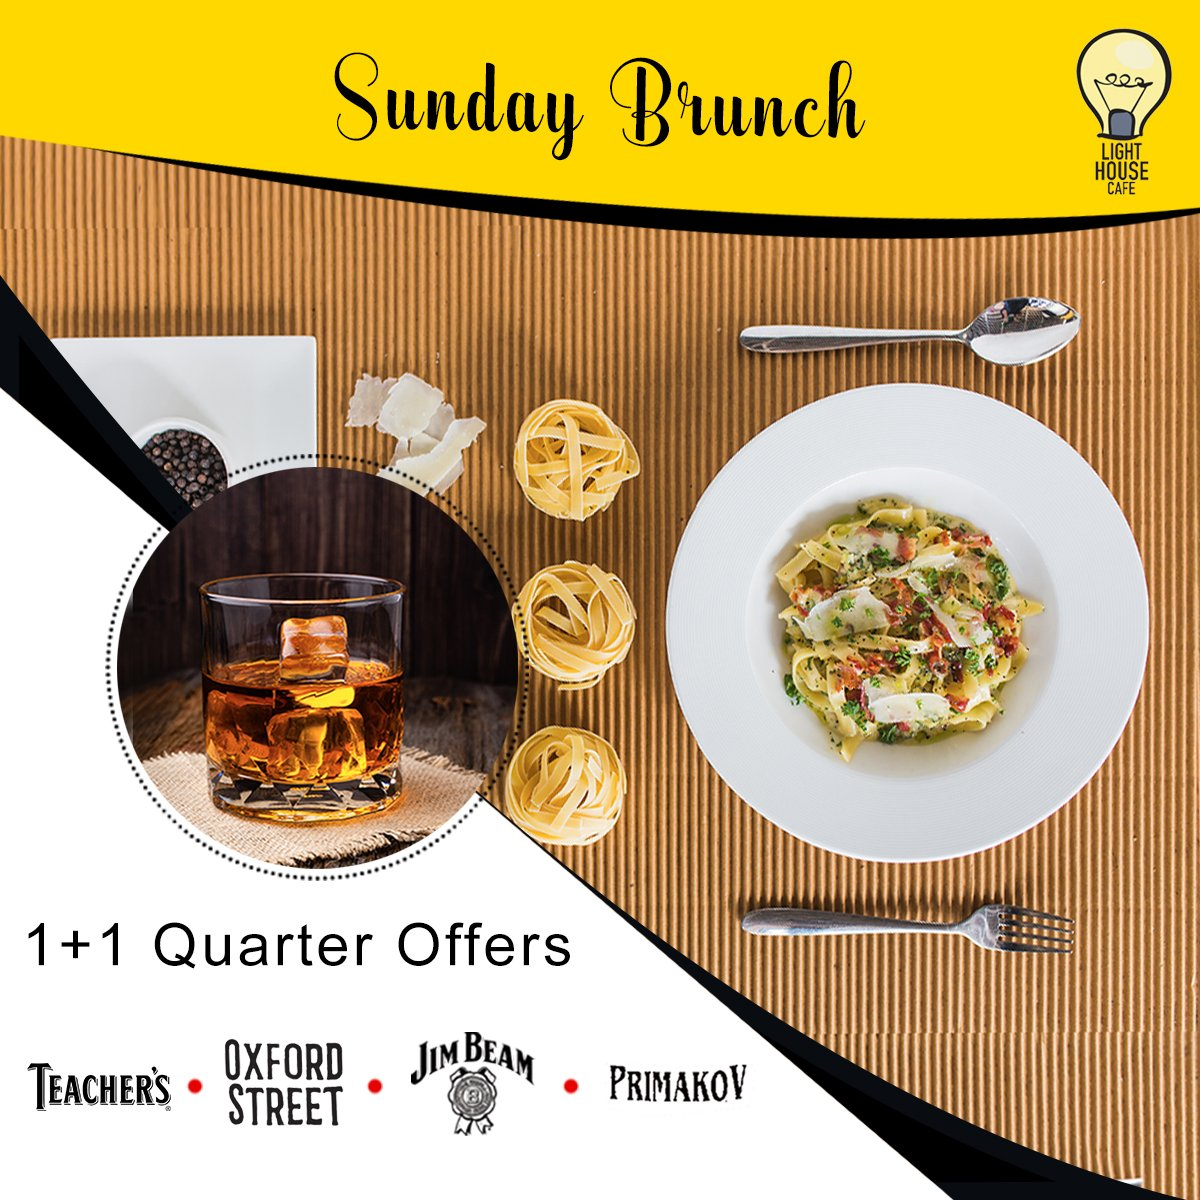 Join us for Sunday Brunch to experience 1 + 1 Quarter Offers at Light House Cafe Mumbai  #LHC #Worli #Mumbai #Zomato #Blogpost #bloggers #Weekday #CurlyTales #Weekends #Thingstodo #Mumbaifoodie #Foodgasm #mumbaifood #indianblogger #dailyfoodfeed #blogspot #Beer #BeerFest